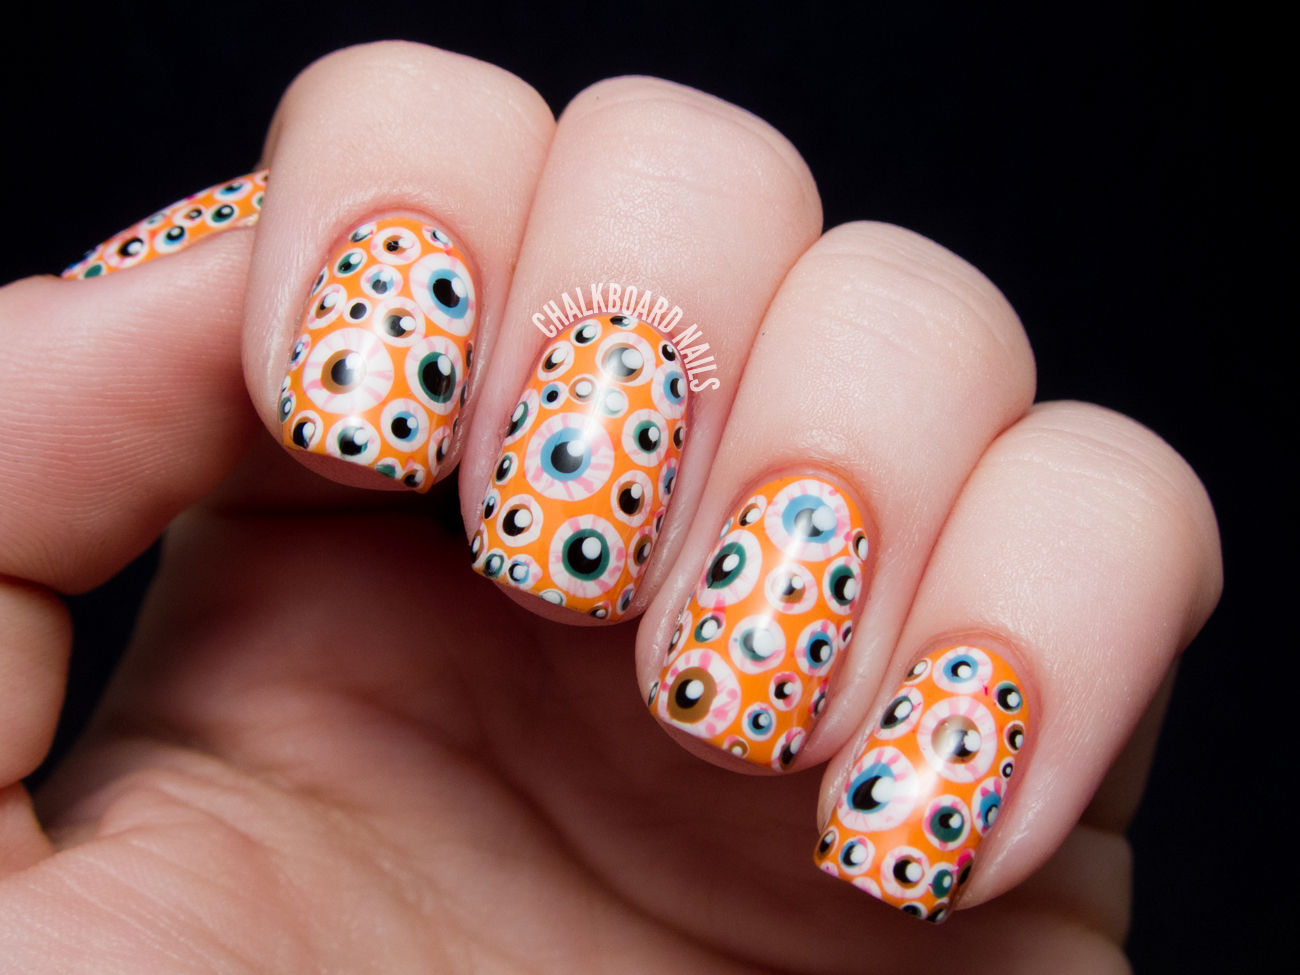 Halloween Eyeball Nail Art by @chalkboardnails